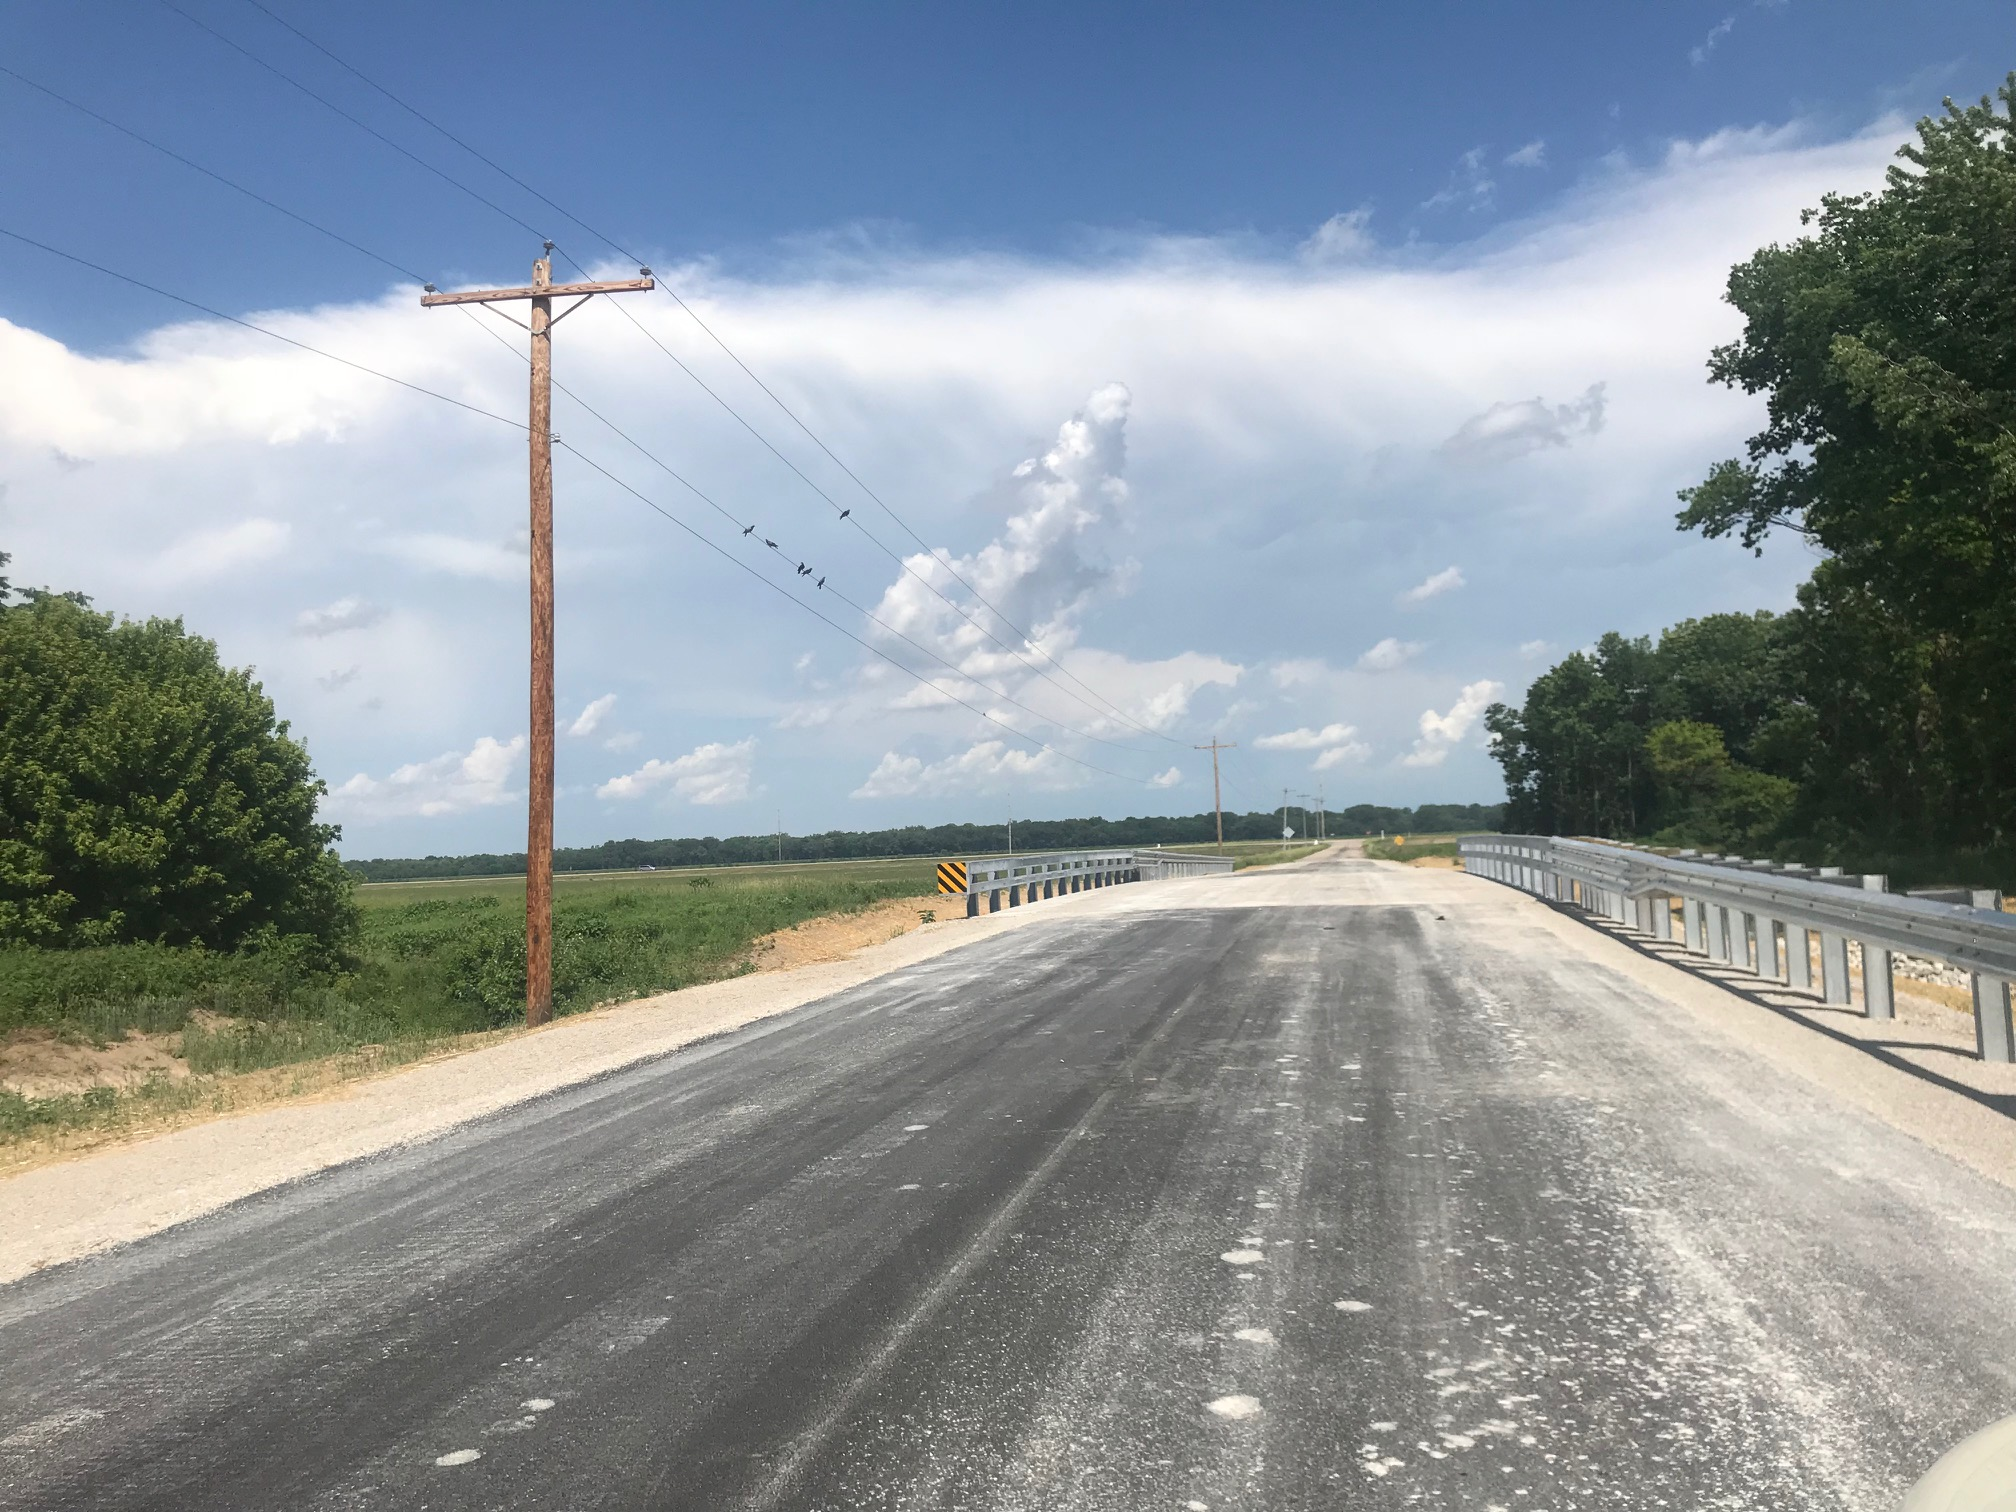 Thrill Hill Bridge is now back open